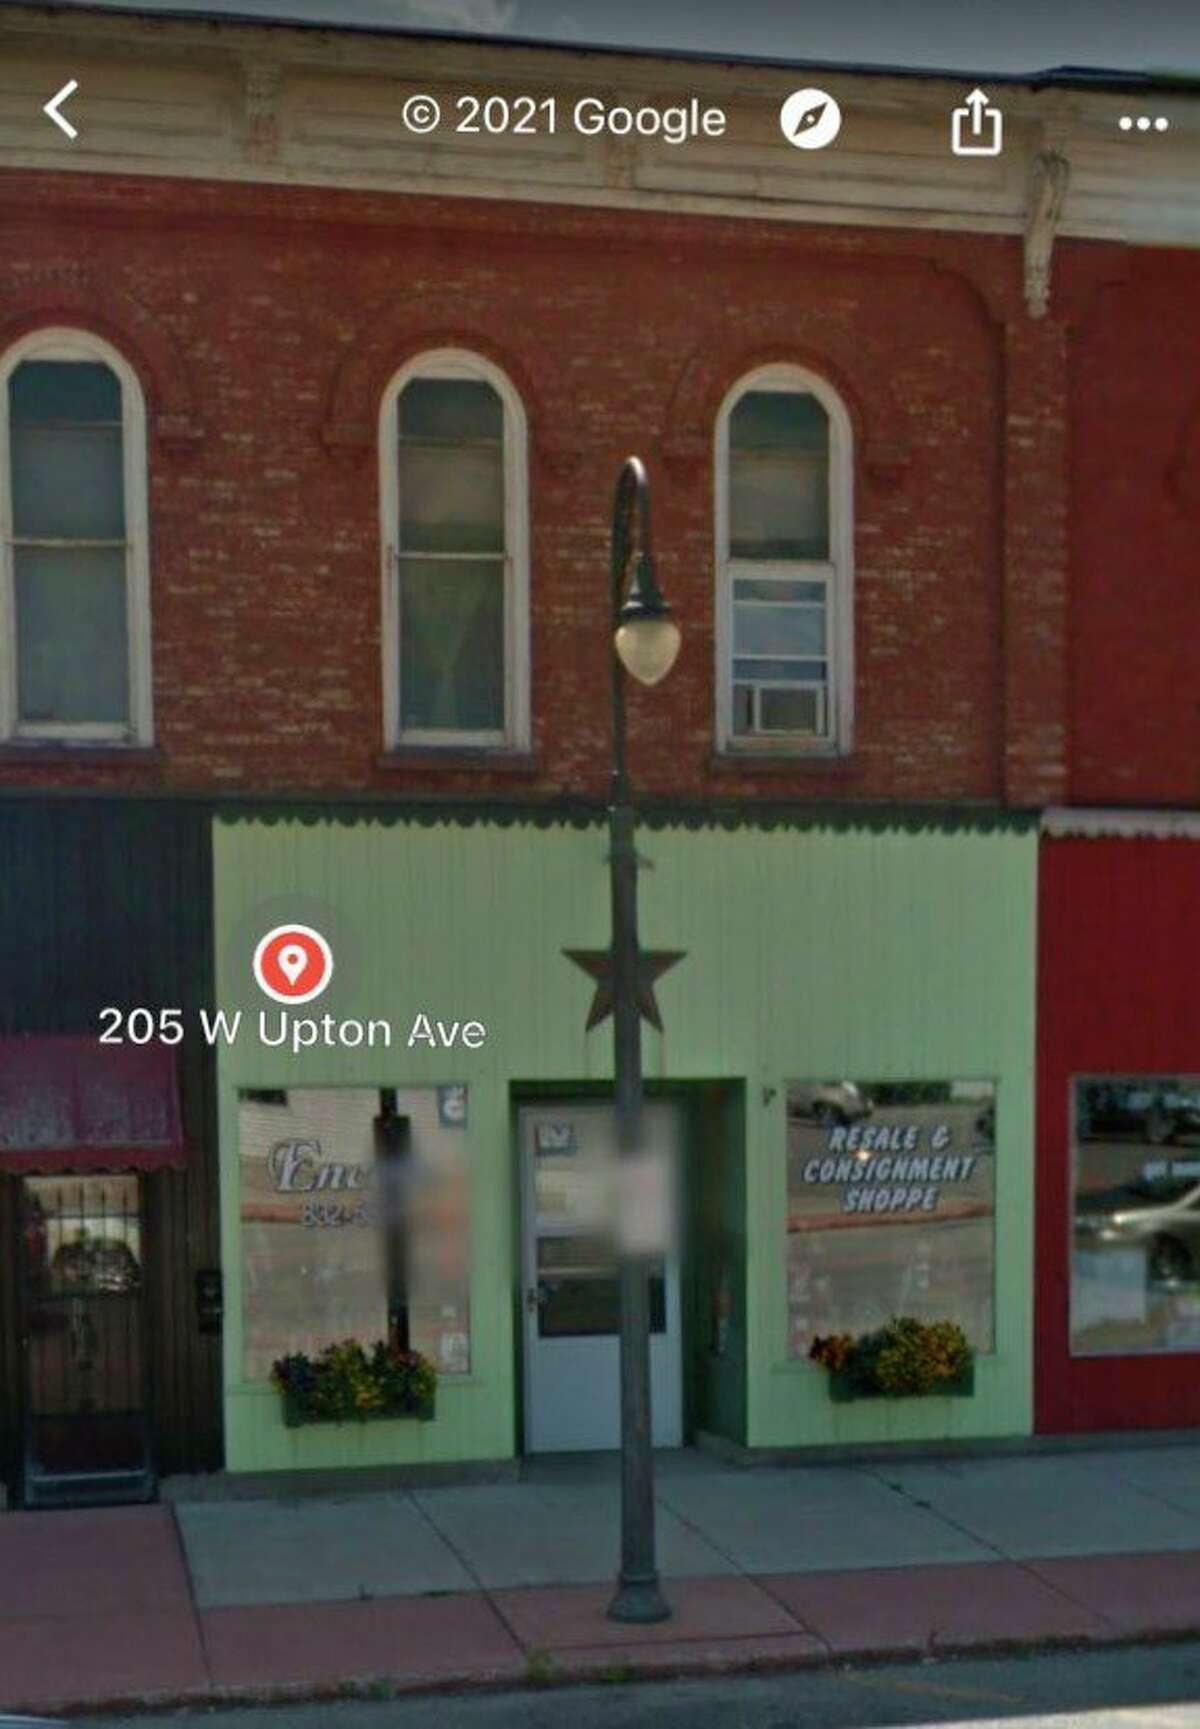 205 W. Upton Ave in Reed City is the new home of New Horizons Humane Society pet food bank and thrift store that will be opening soon. (Photo courtesy of Google Maps)